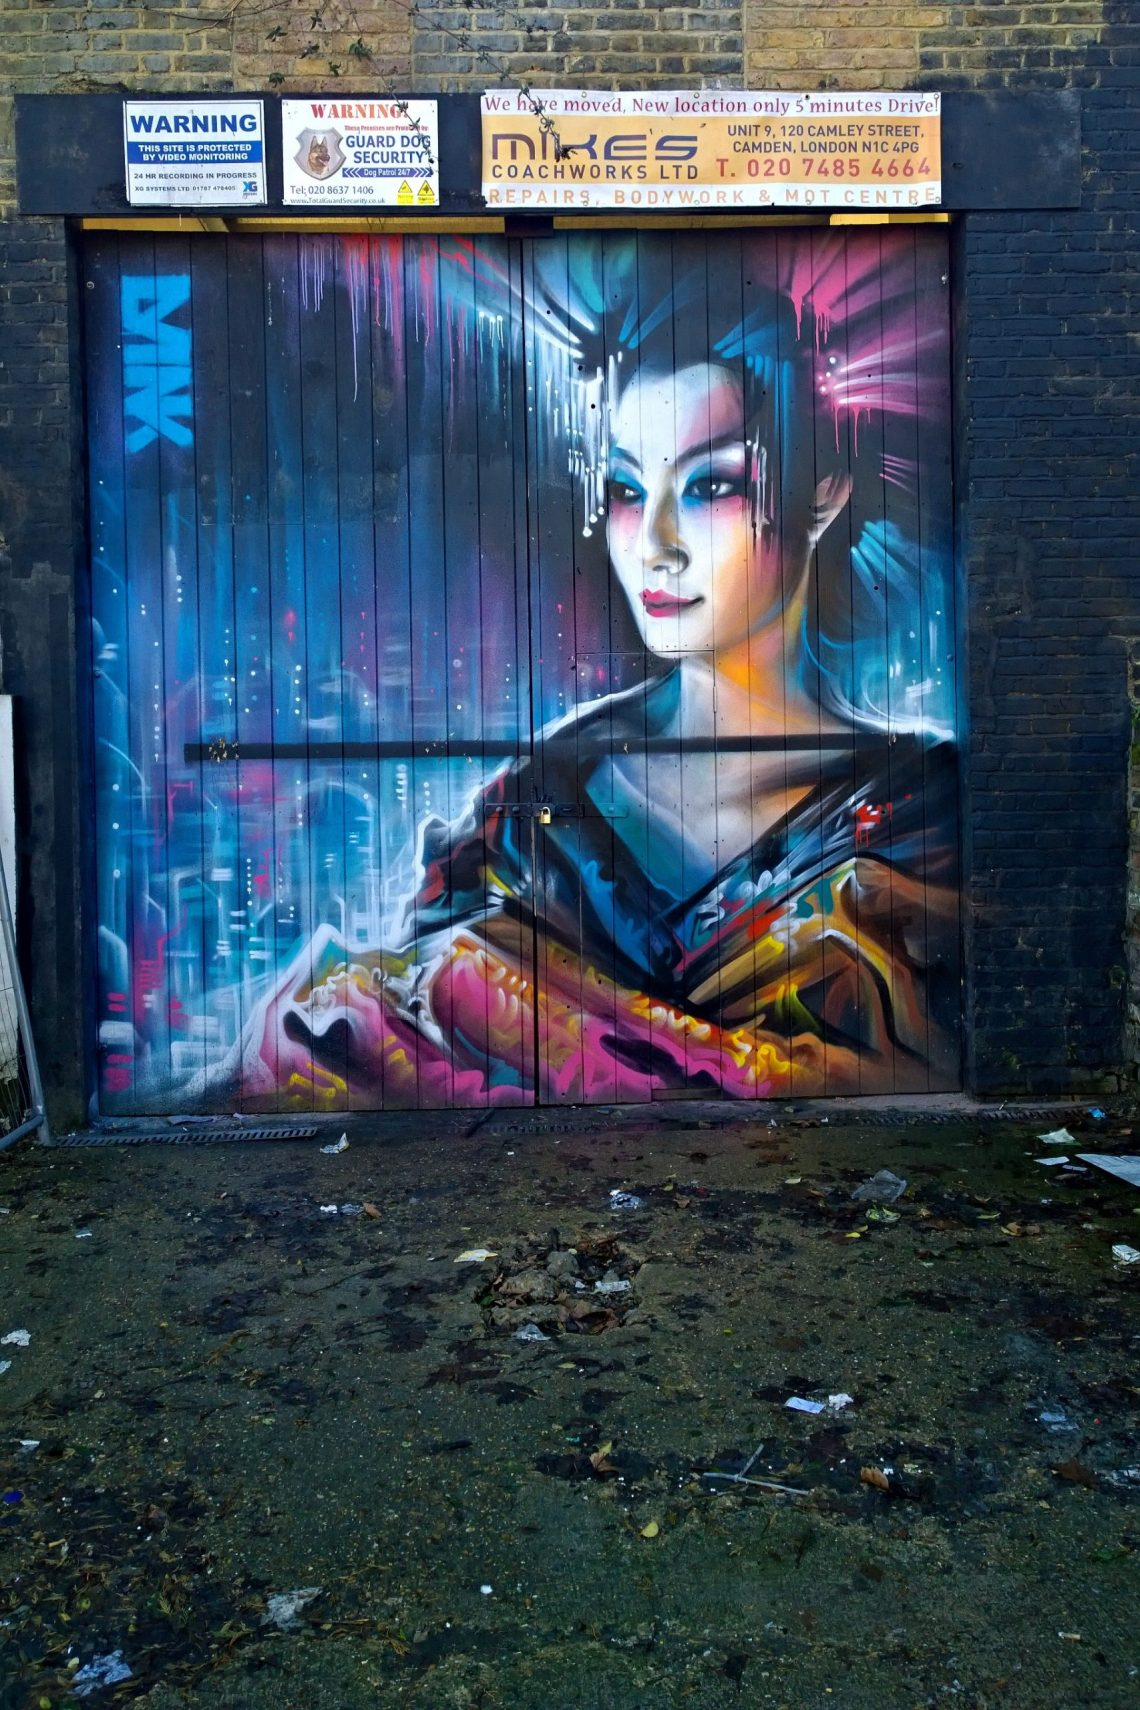 camden dan kitchener